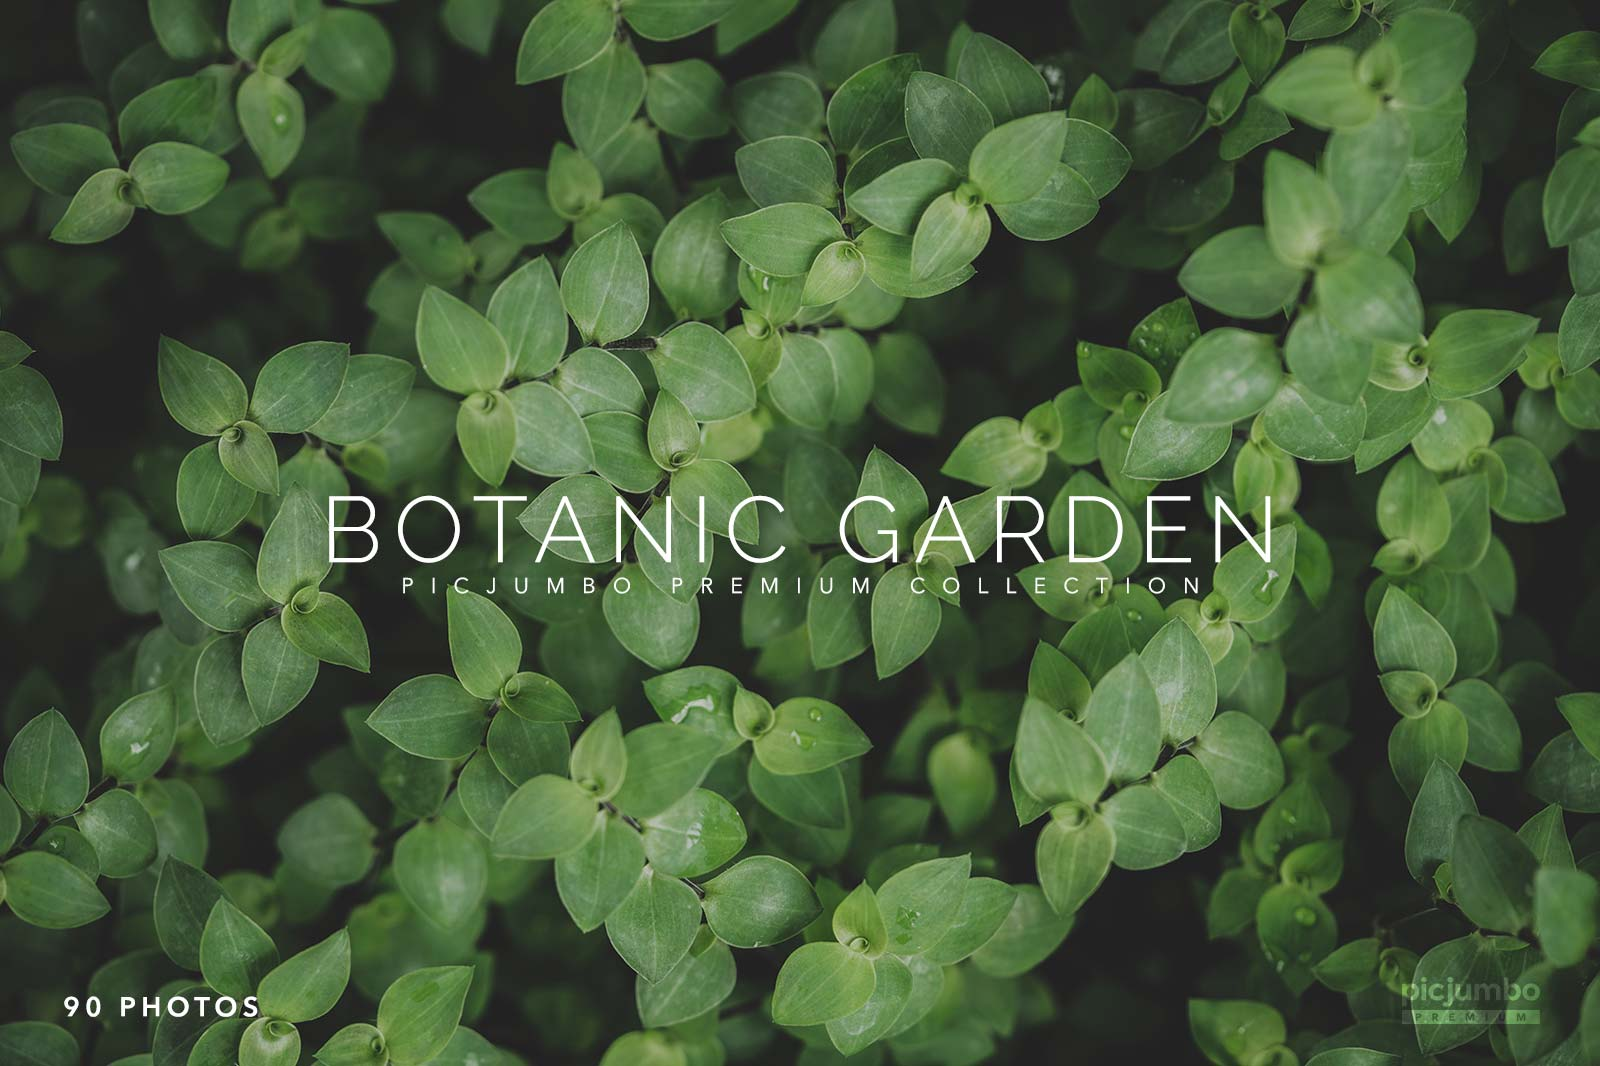 Botanic Garden — Join PREMIUM and get instant access to this collection!